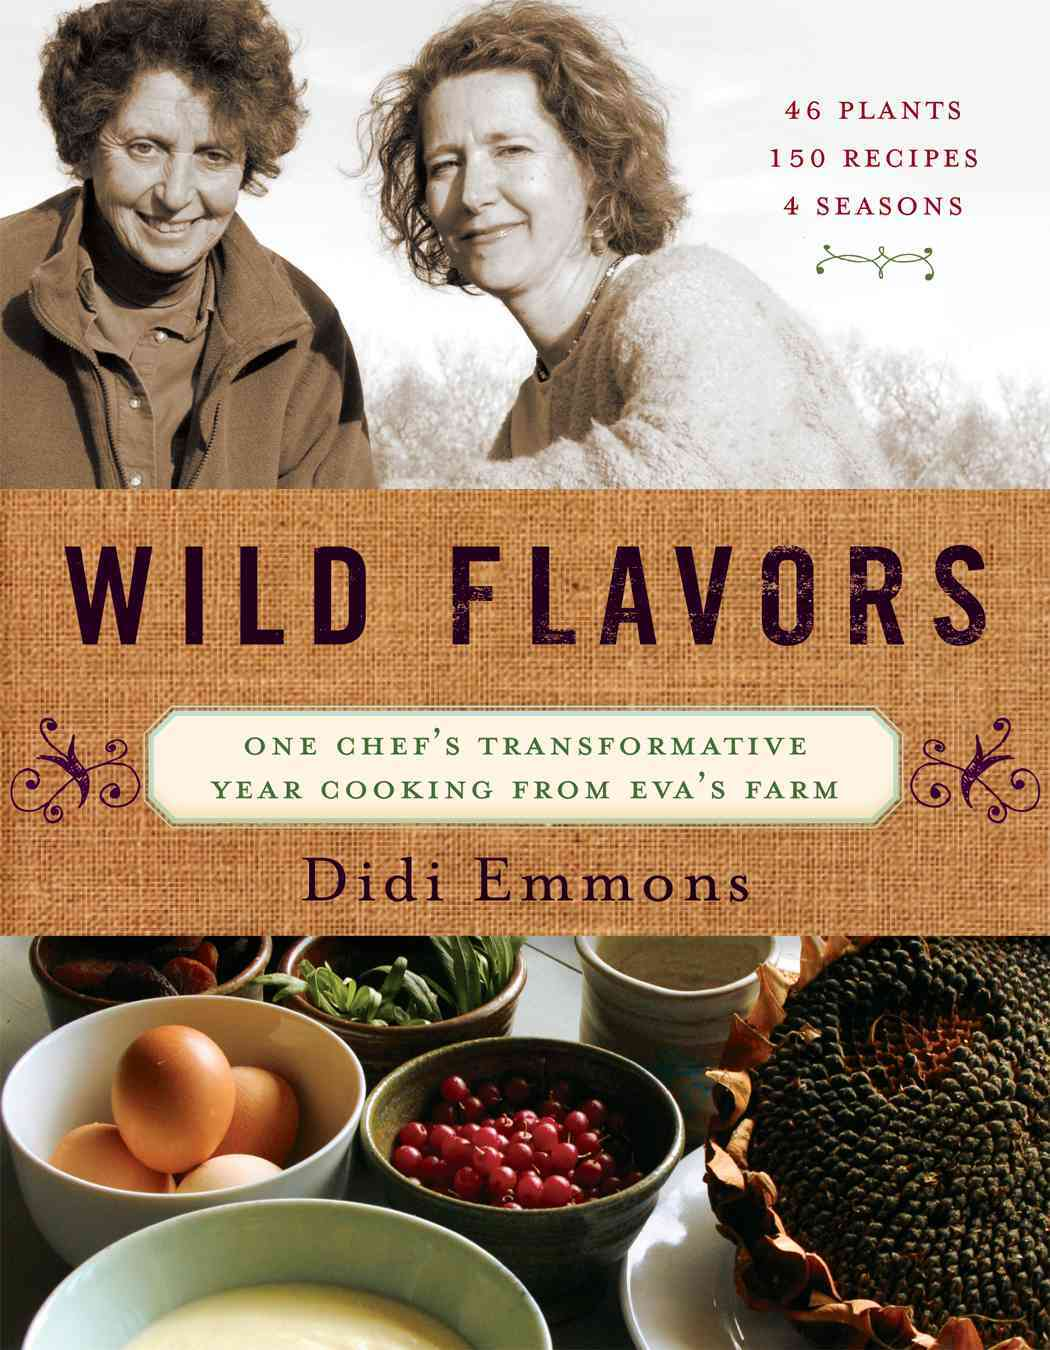 Wild Flavors: One Chef's Transformative Year Cooking from Eva's Farm (Hardcover) - Thumbnail 0